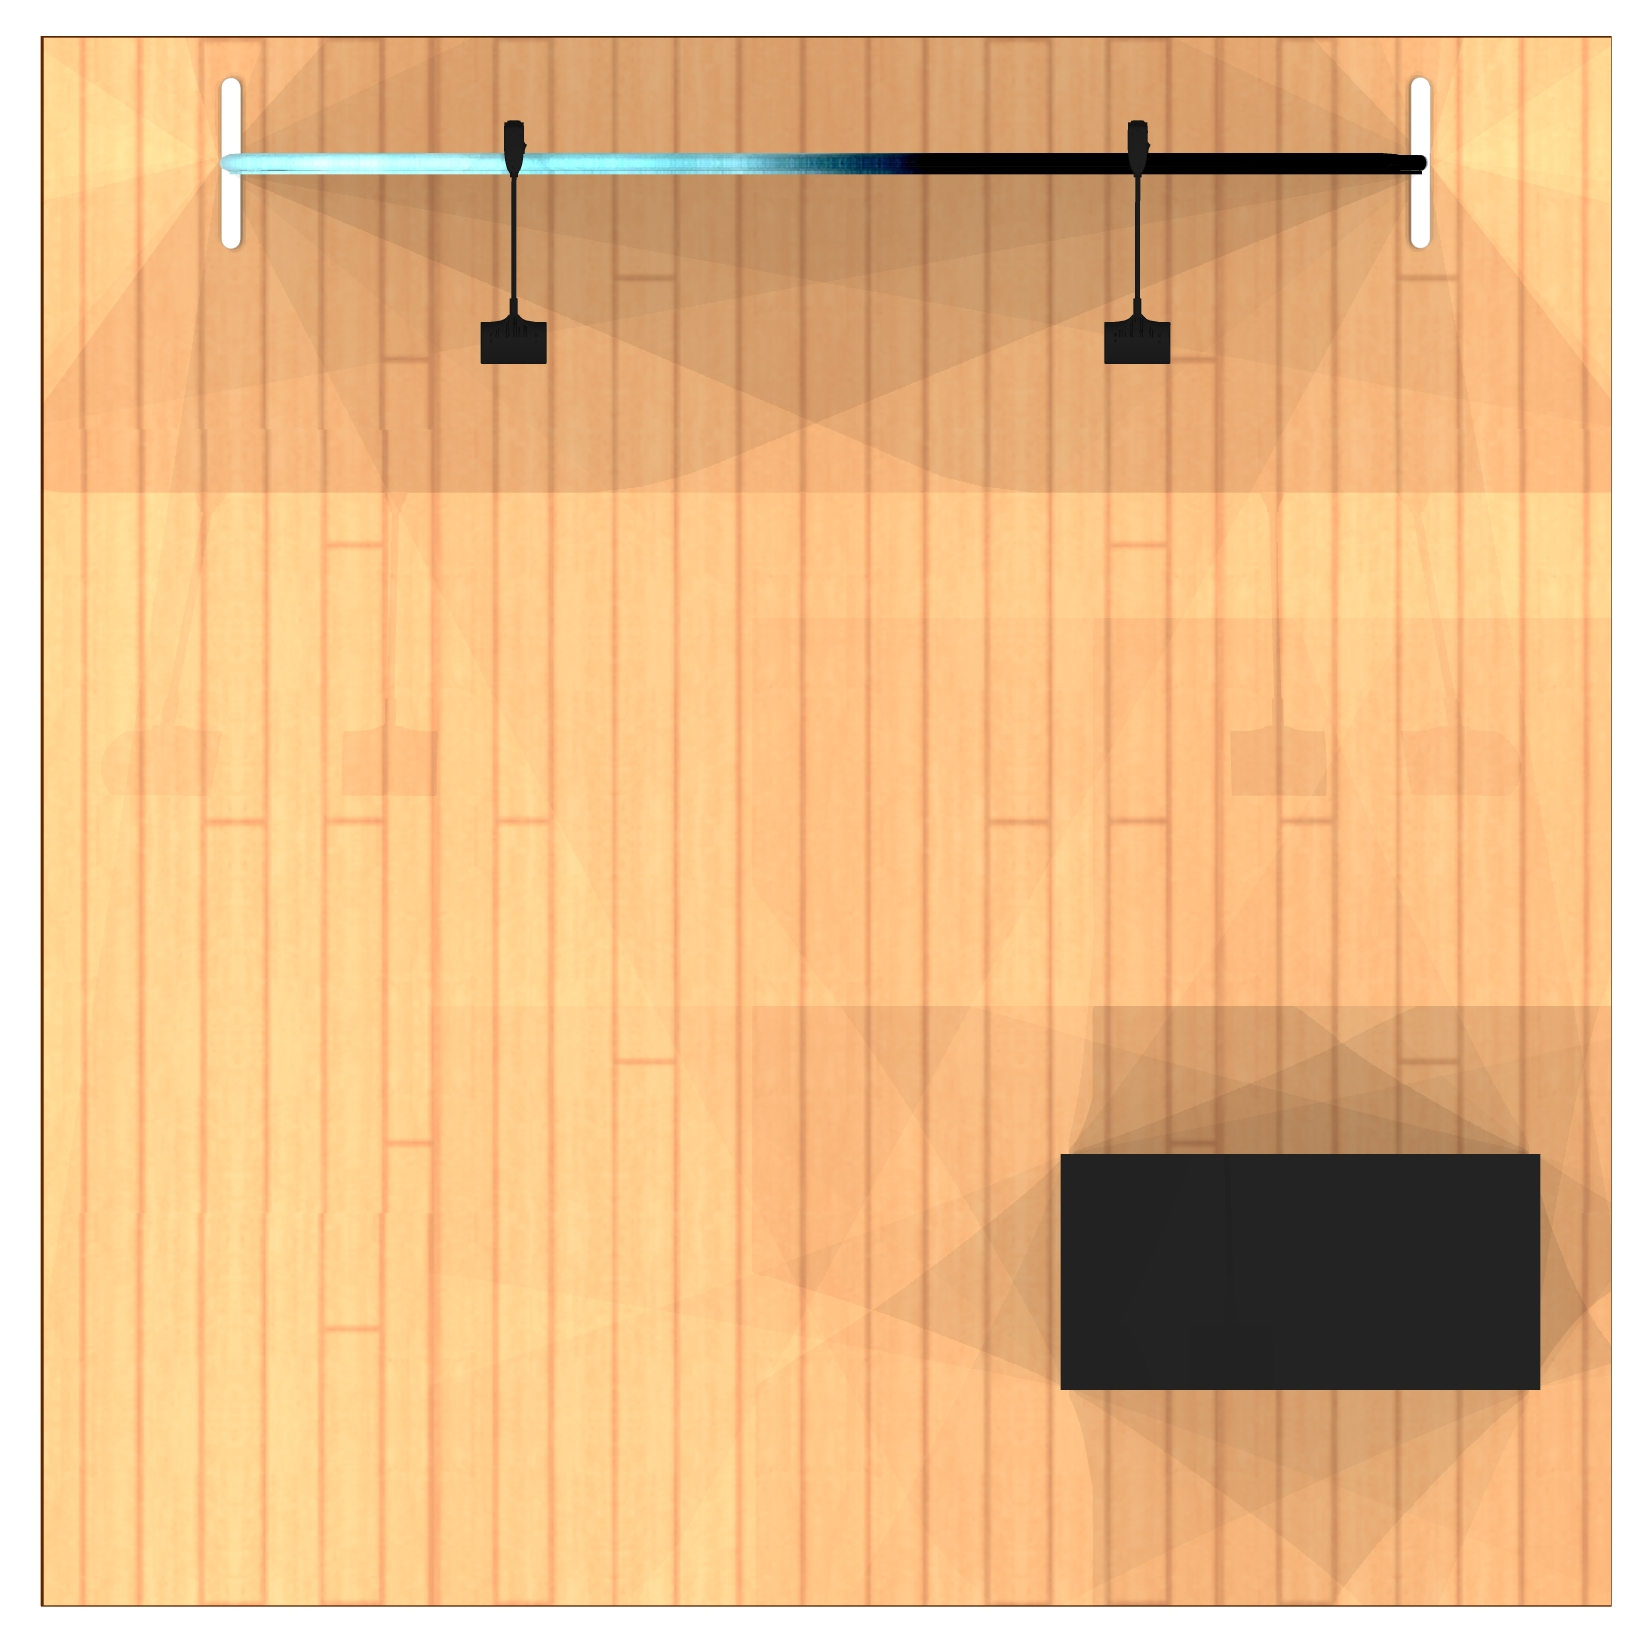 8ft Tension Fabric Display Kit top